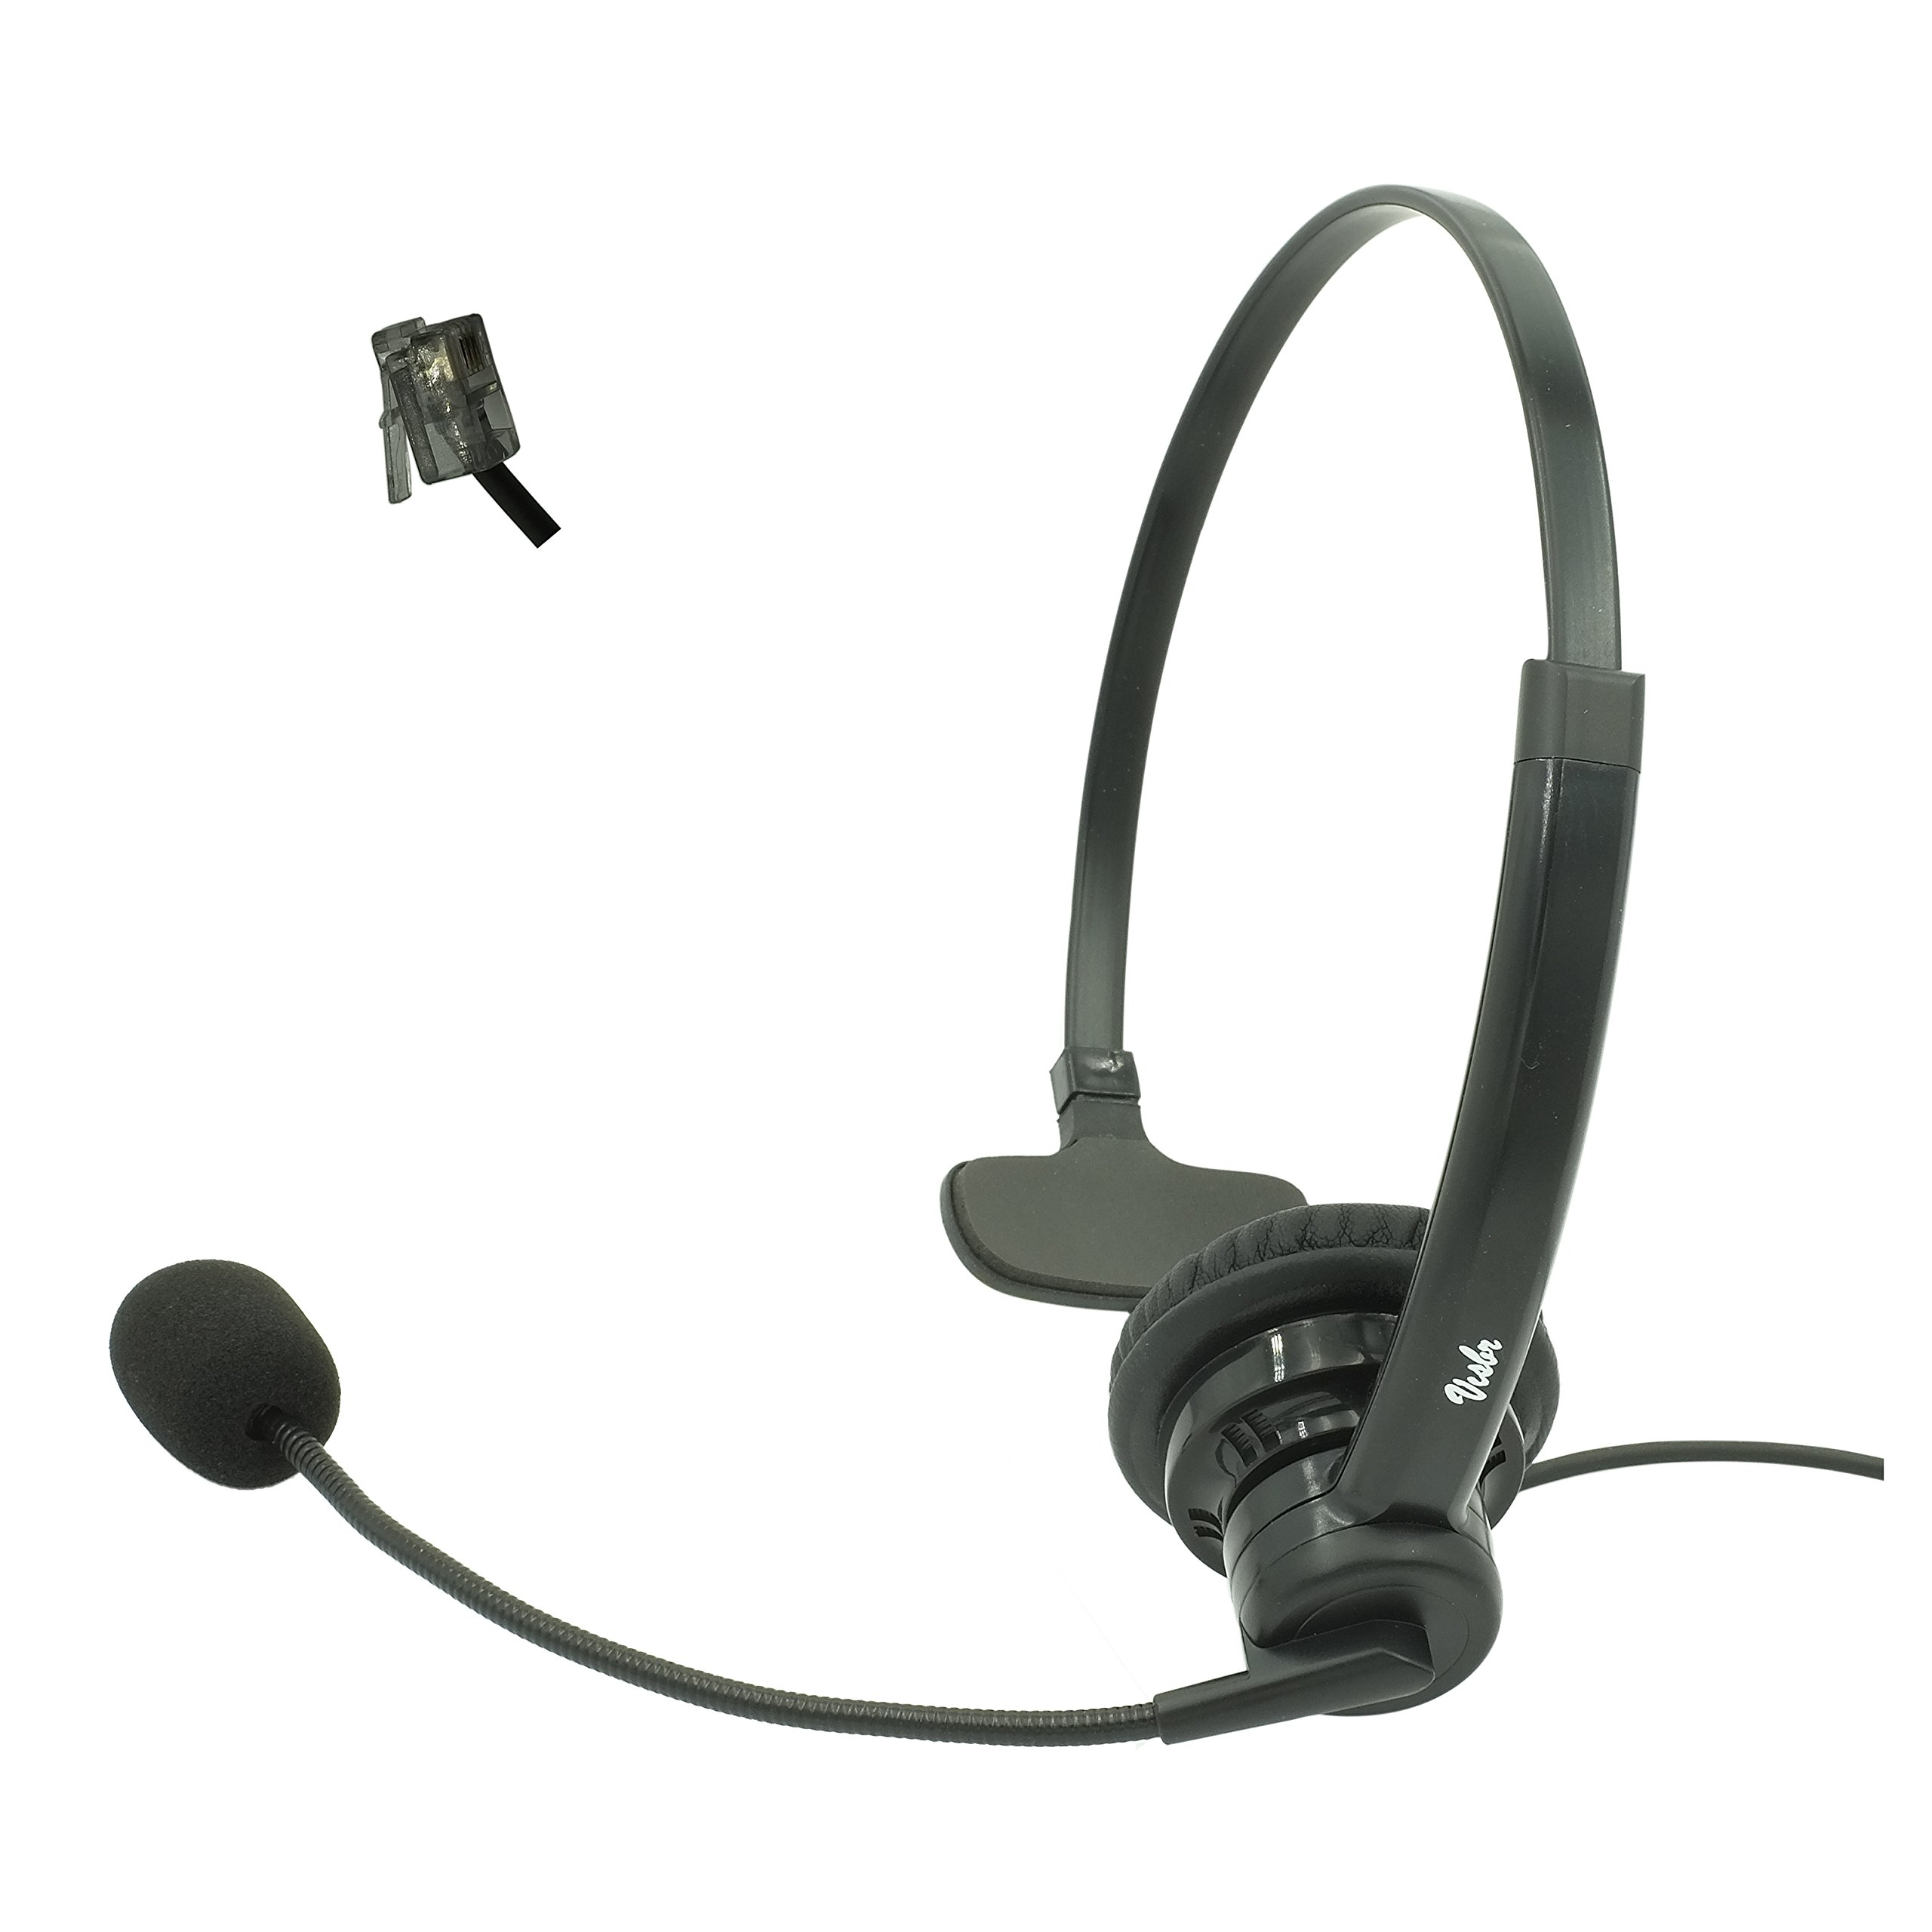 Cheap One Jack Headset, find One Jack Headset deals on line